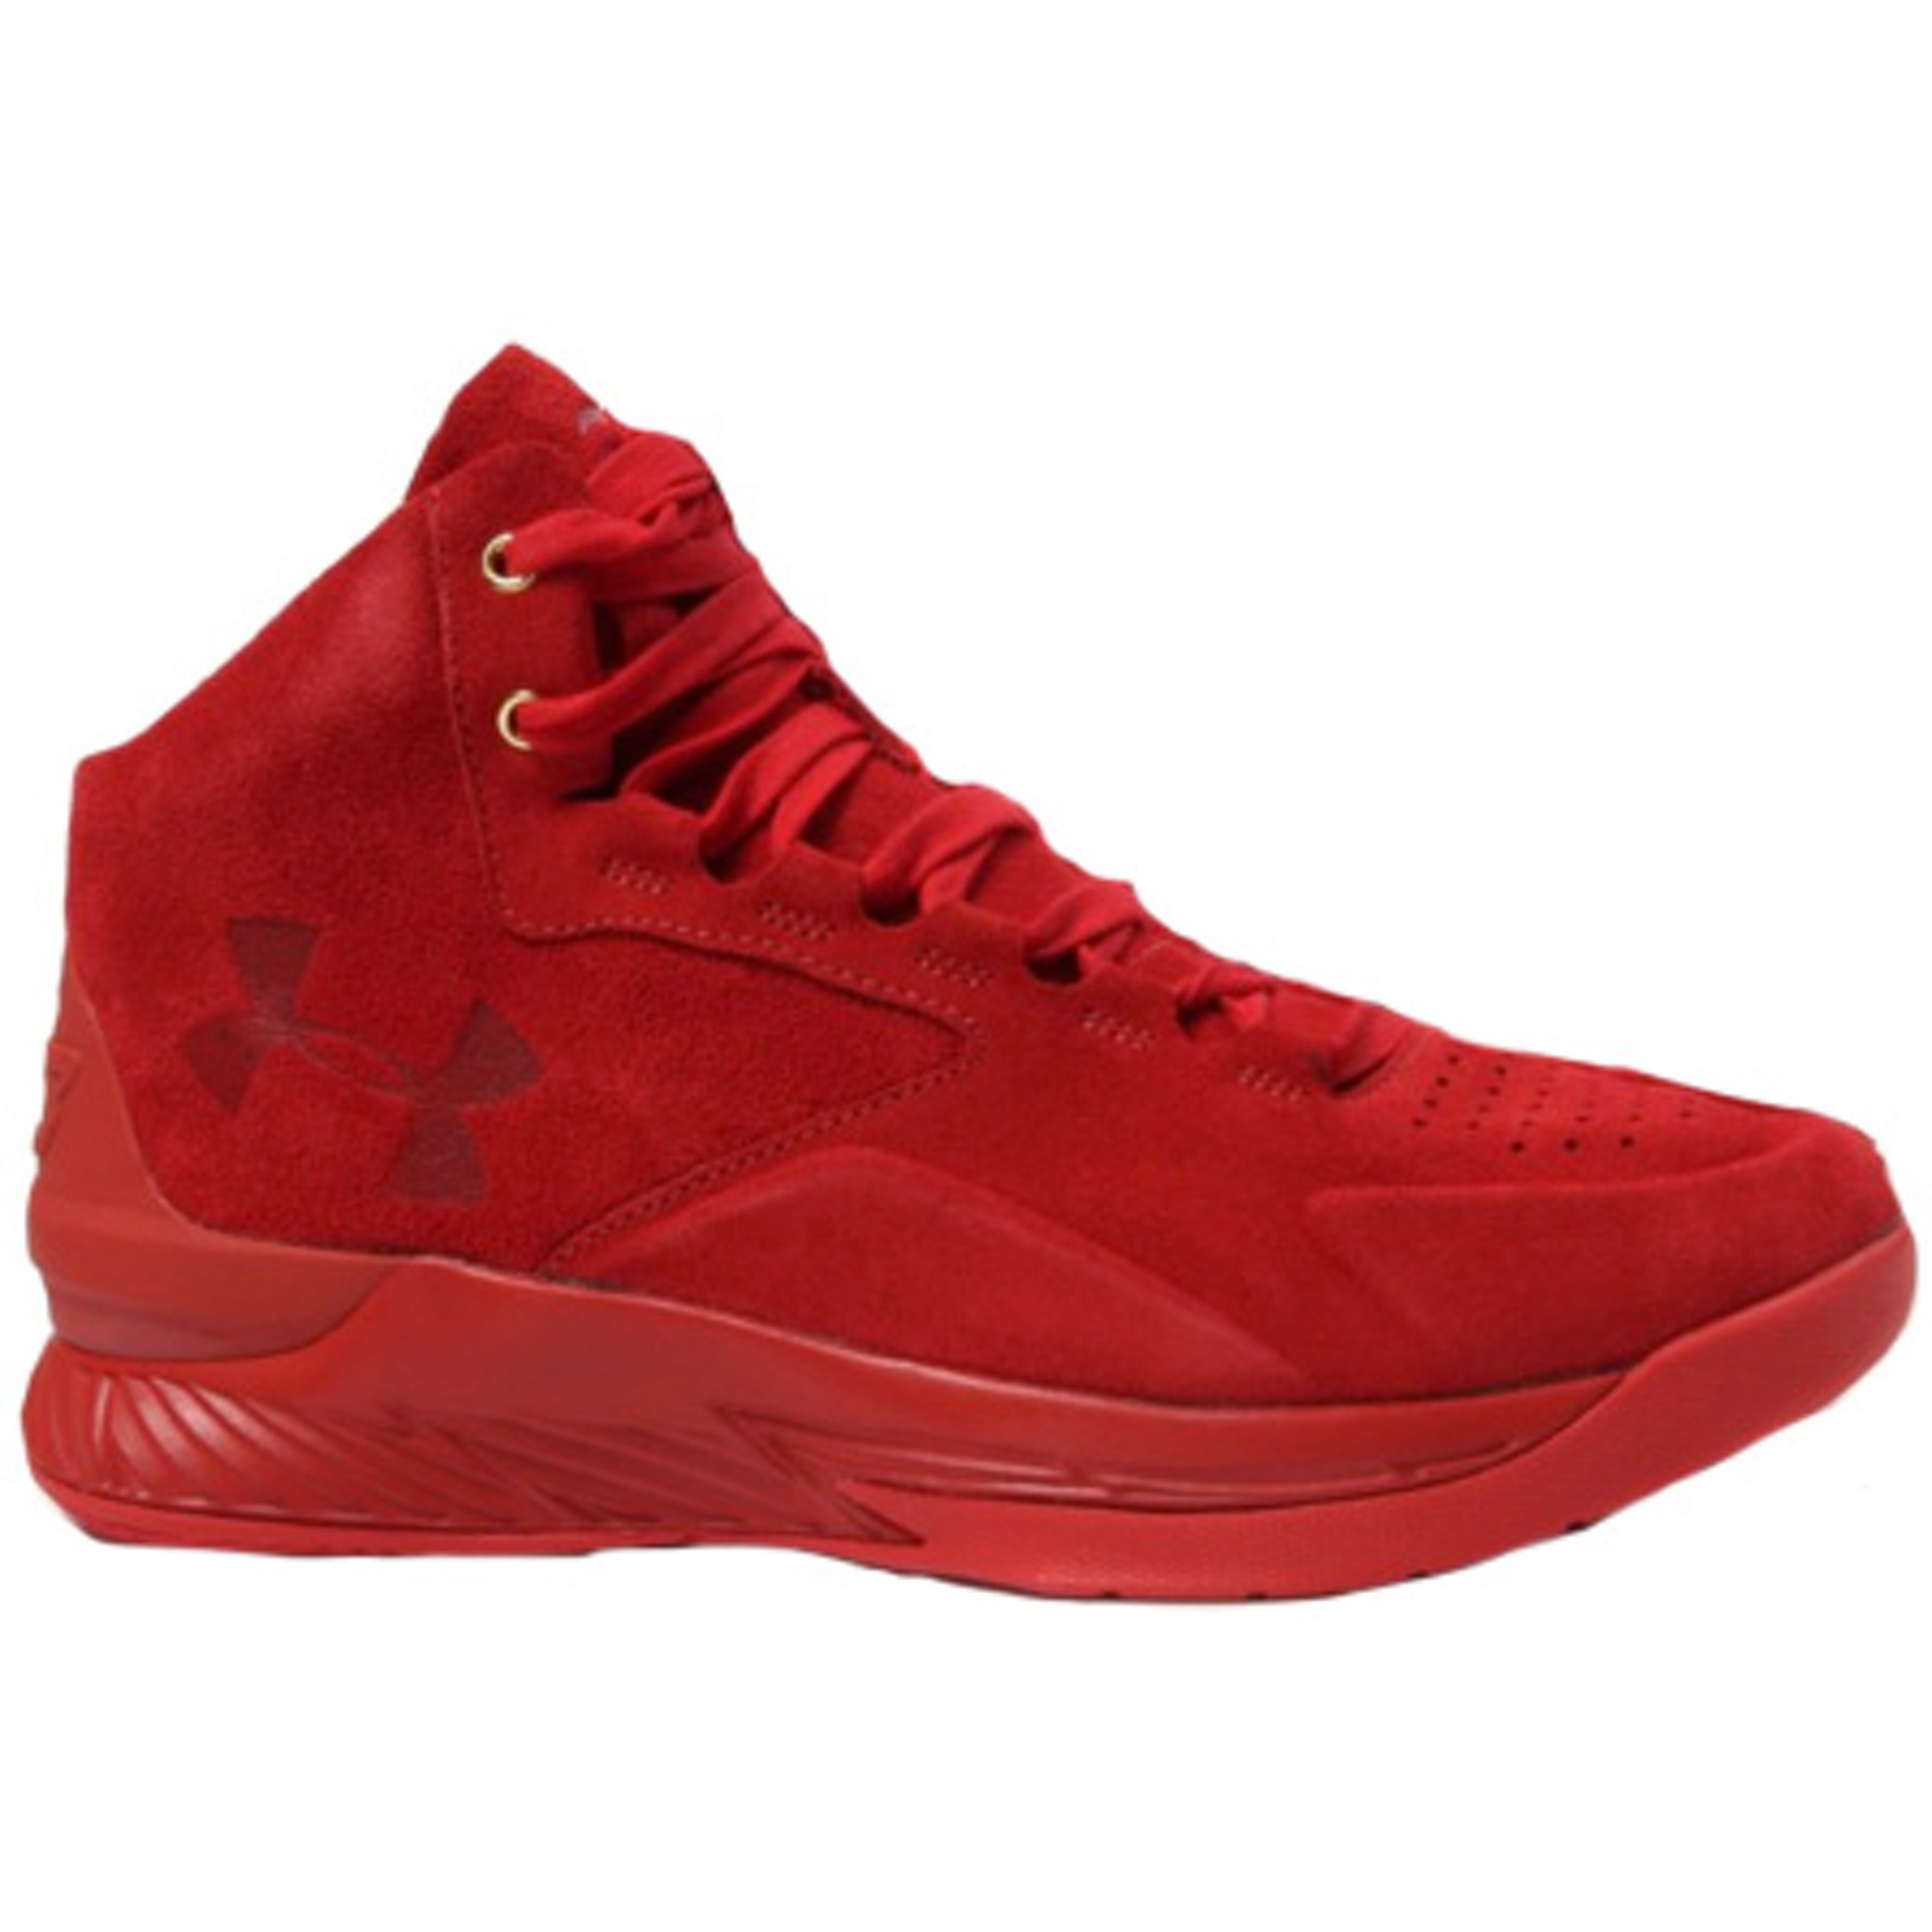 Under Armour UA Curry 1 Lux Red (1298701-600)